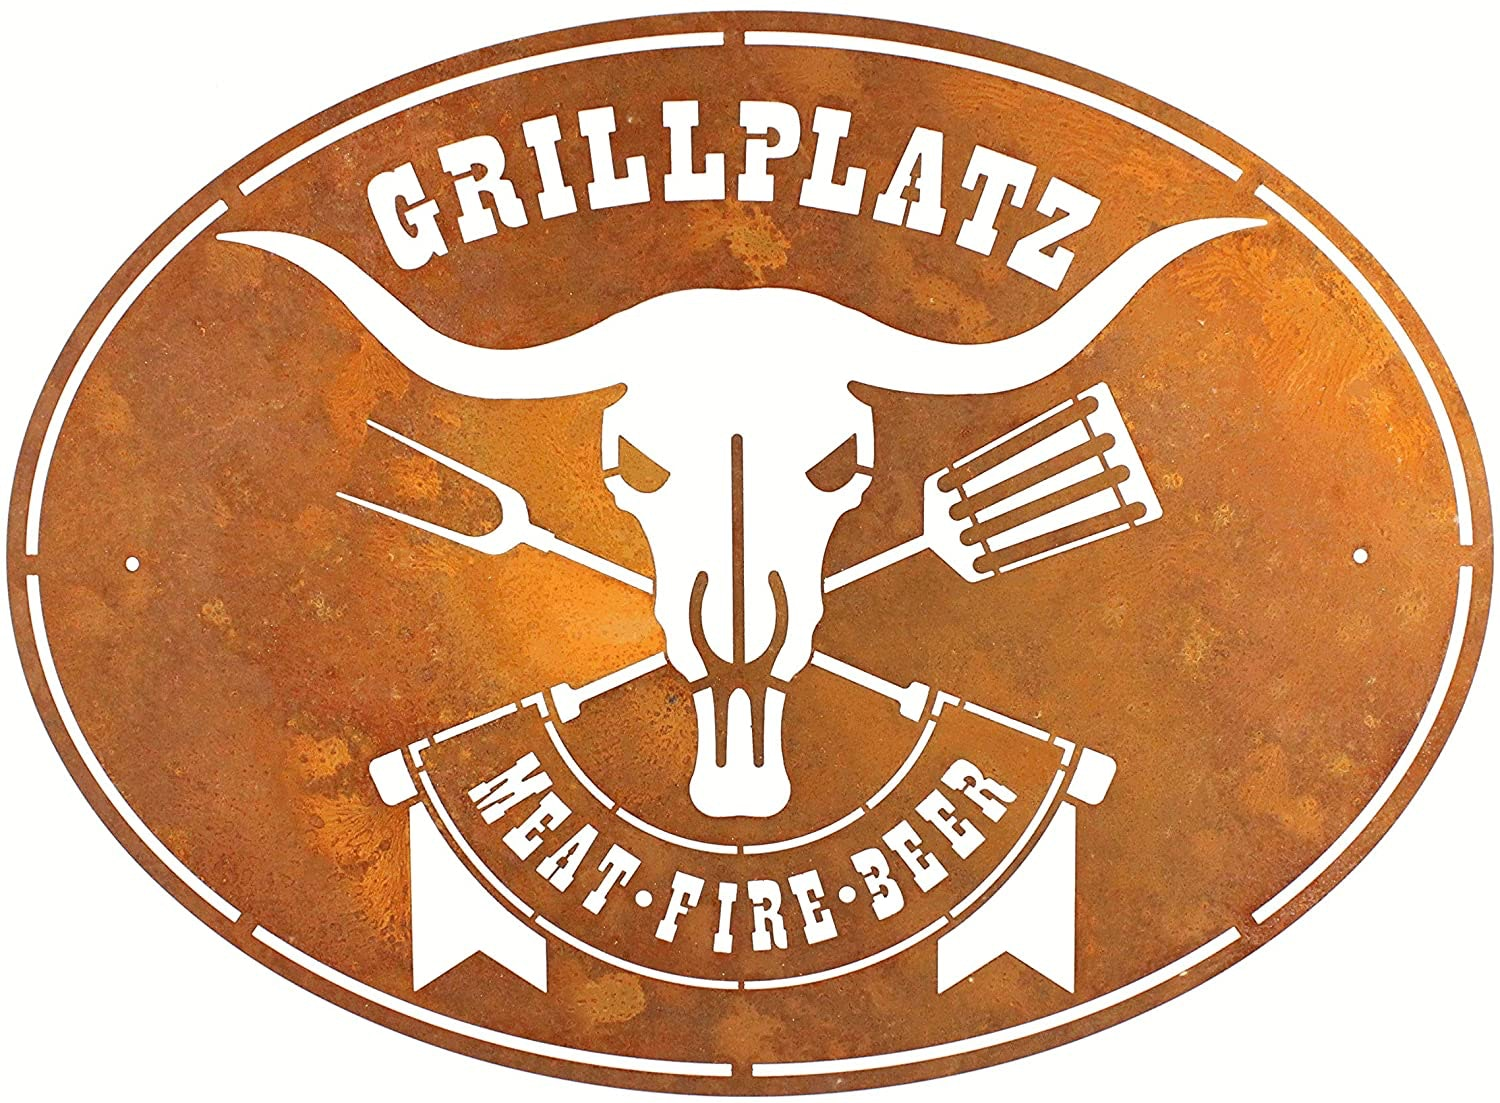 Grillplatz Meat-Fire-Beer in Edelrost-Optik